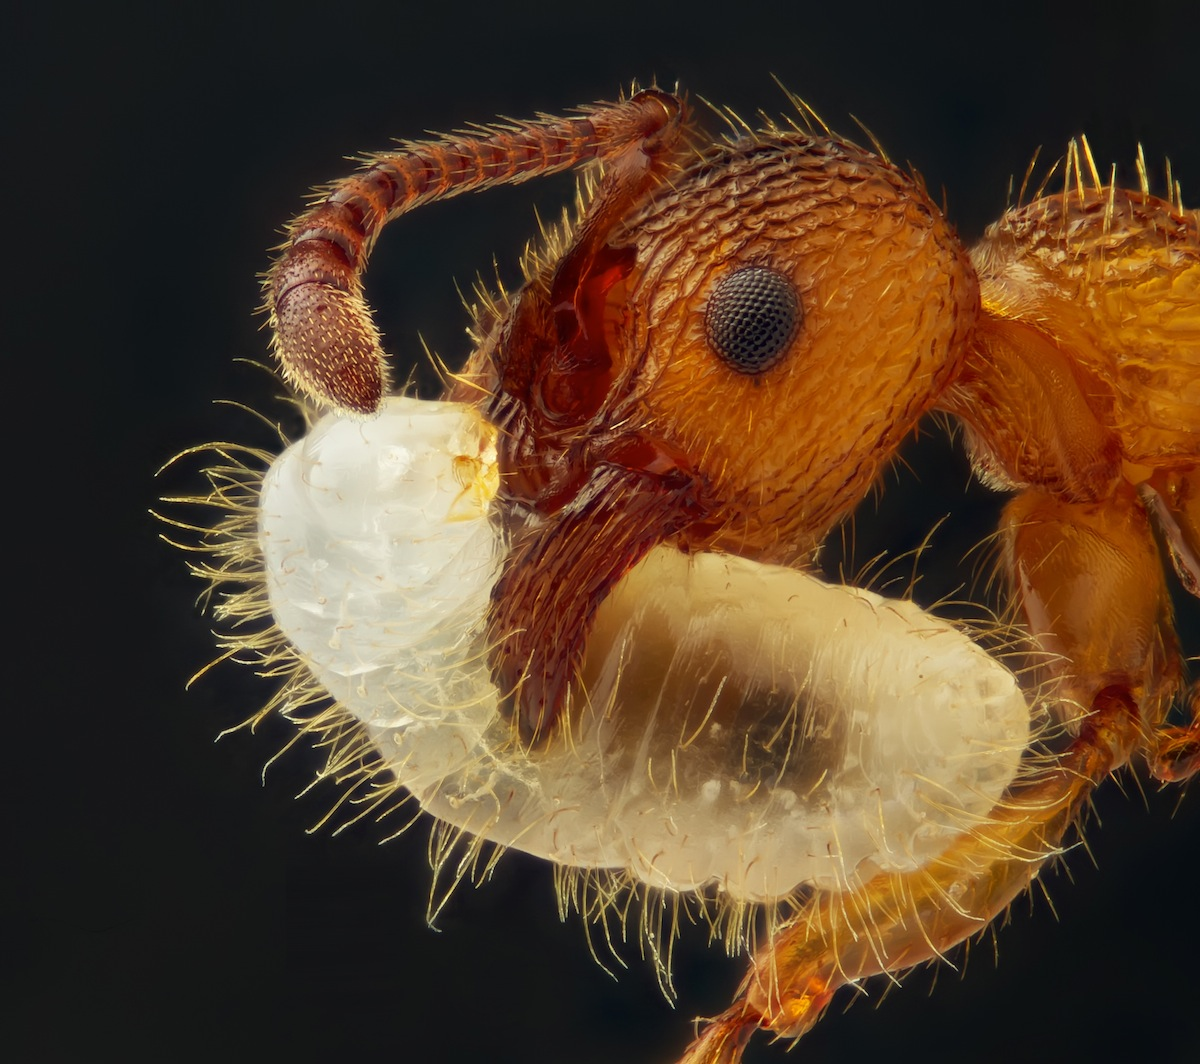 Geir Drange from Norway captured this ant carrying its larva.